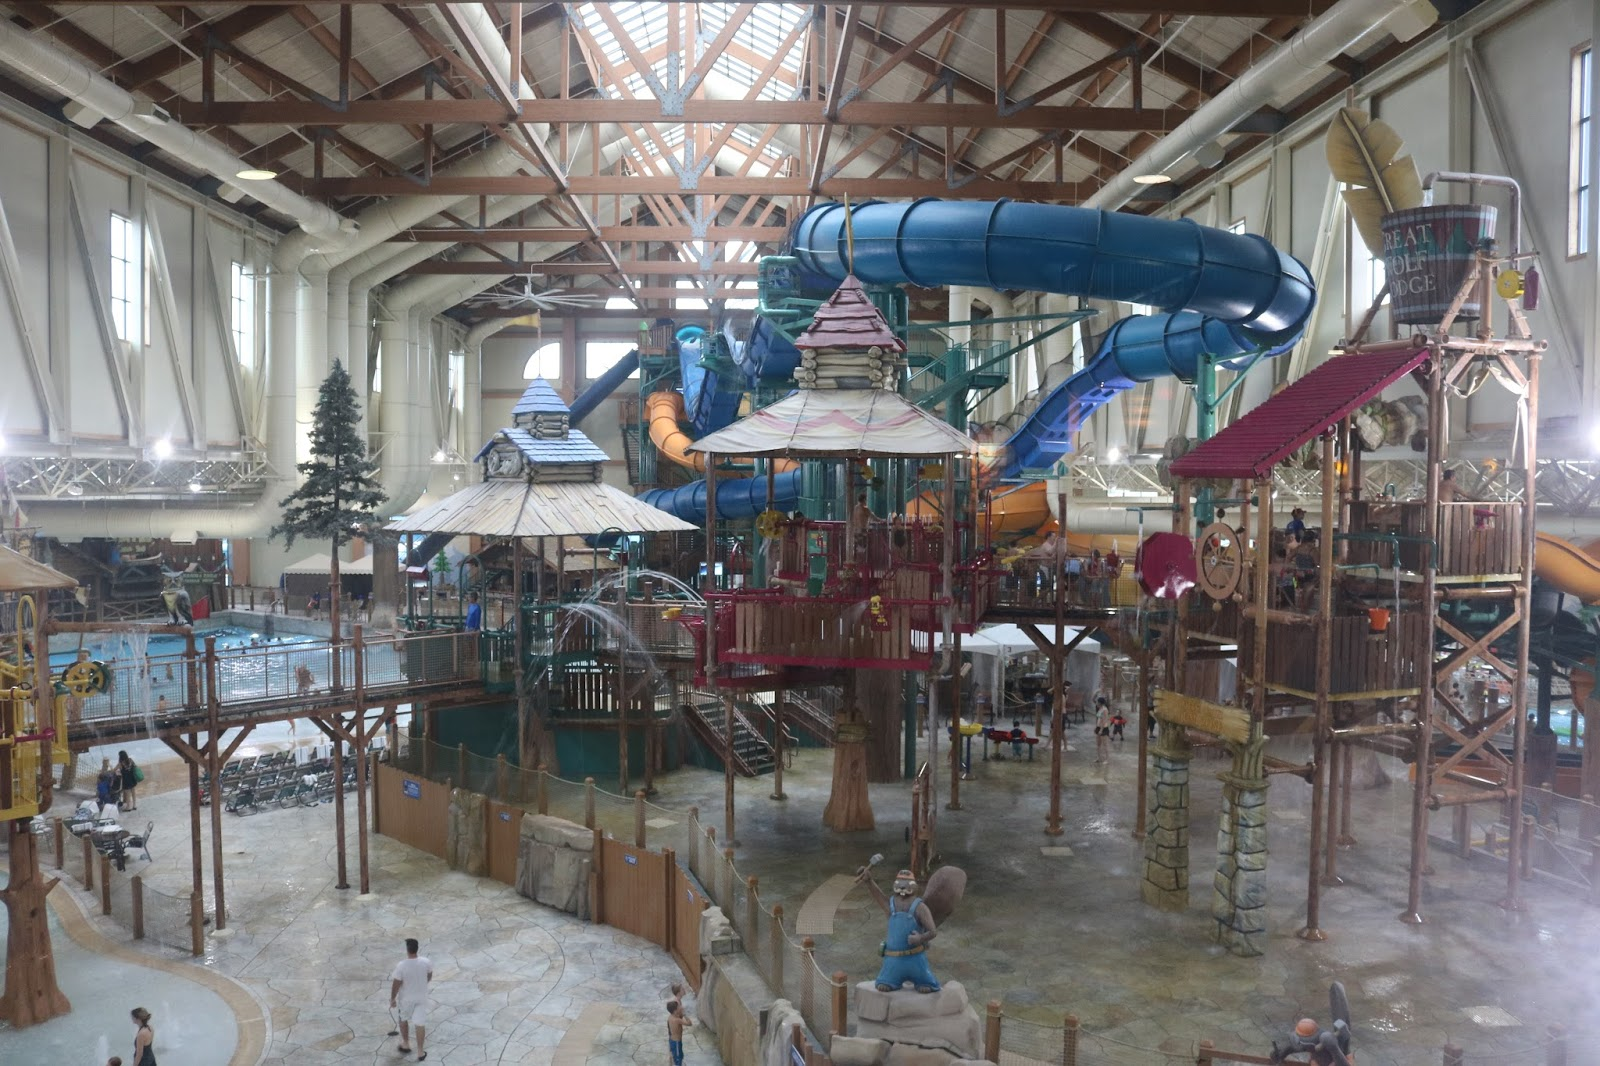 Sally Corporation boats more than 30 years experience in the industry, and currently designs & manufactures some of the most successful interactive dark rides.